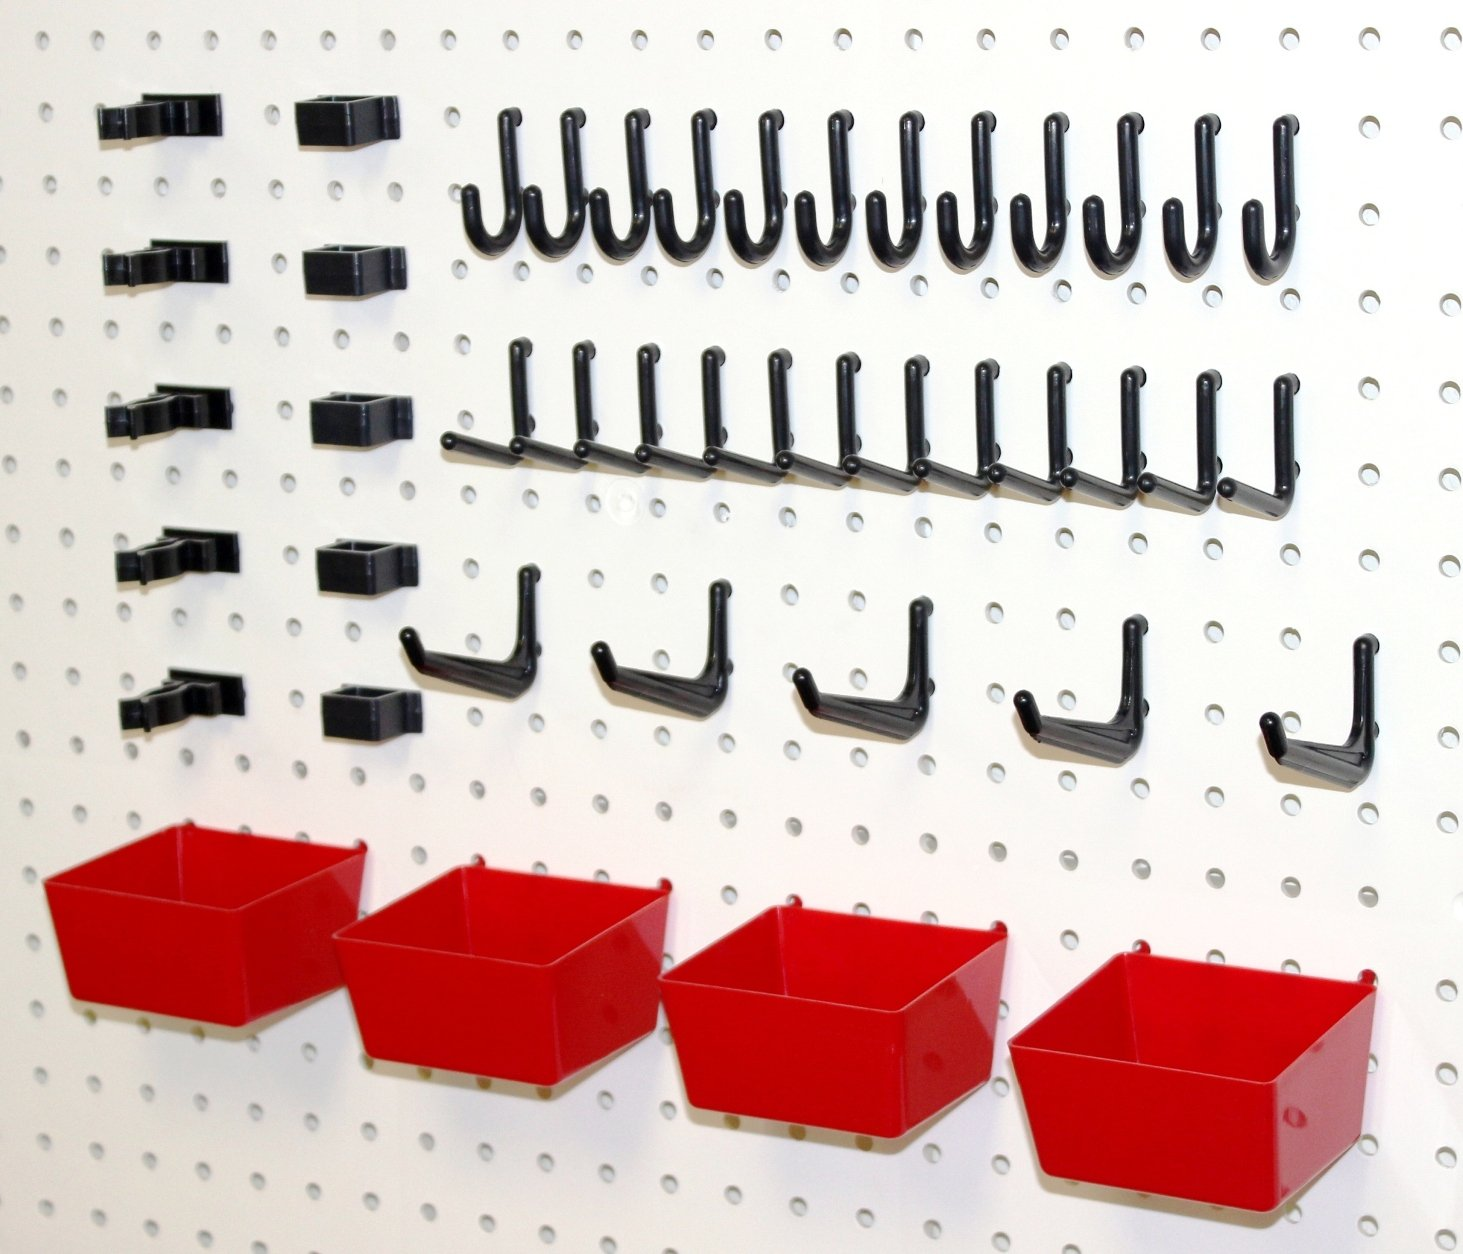 WallPeg Pegboard Hooks, Plastic Pegboard Bins, 26 Pc. Kit Tool Holders Workbench